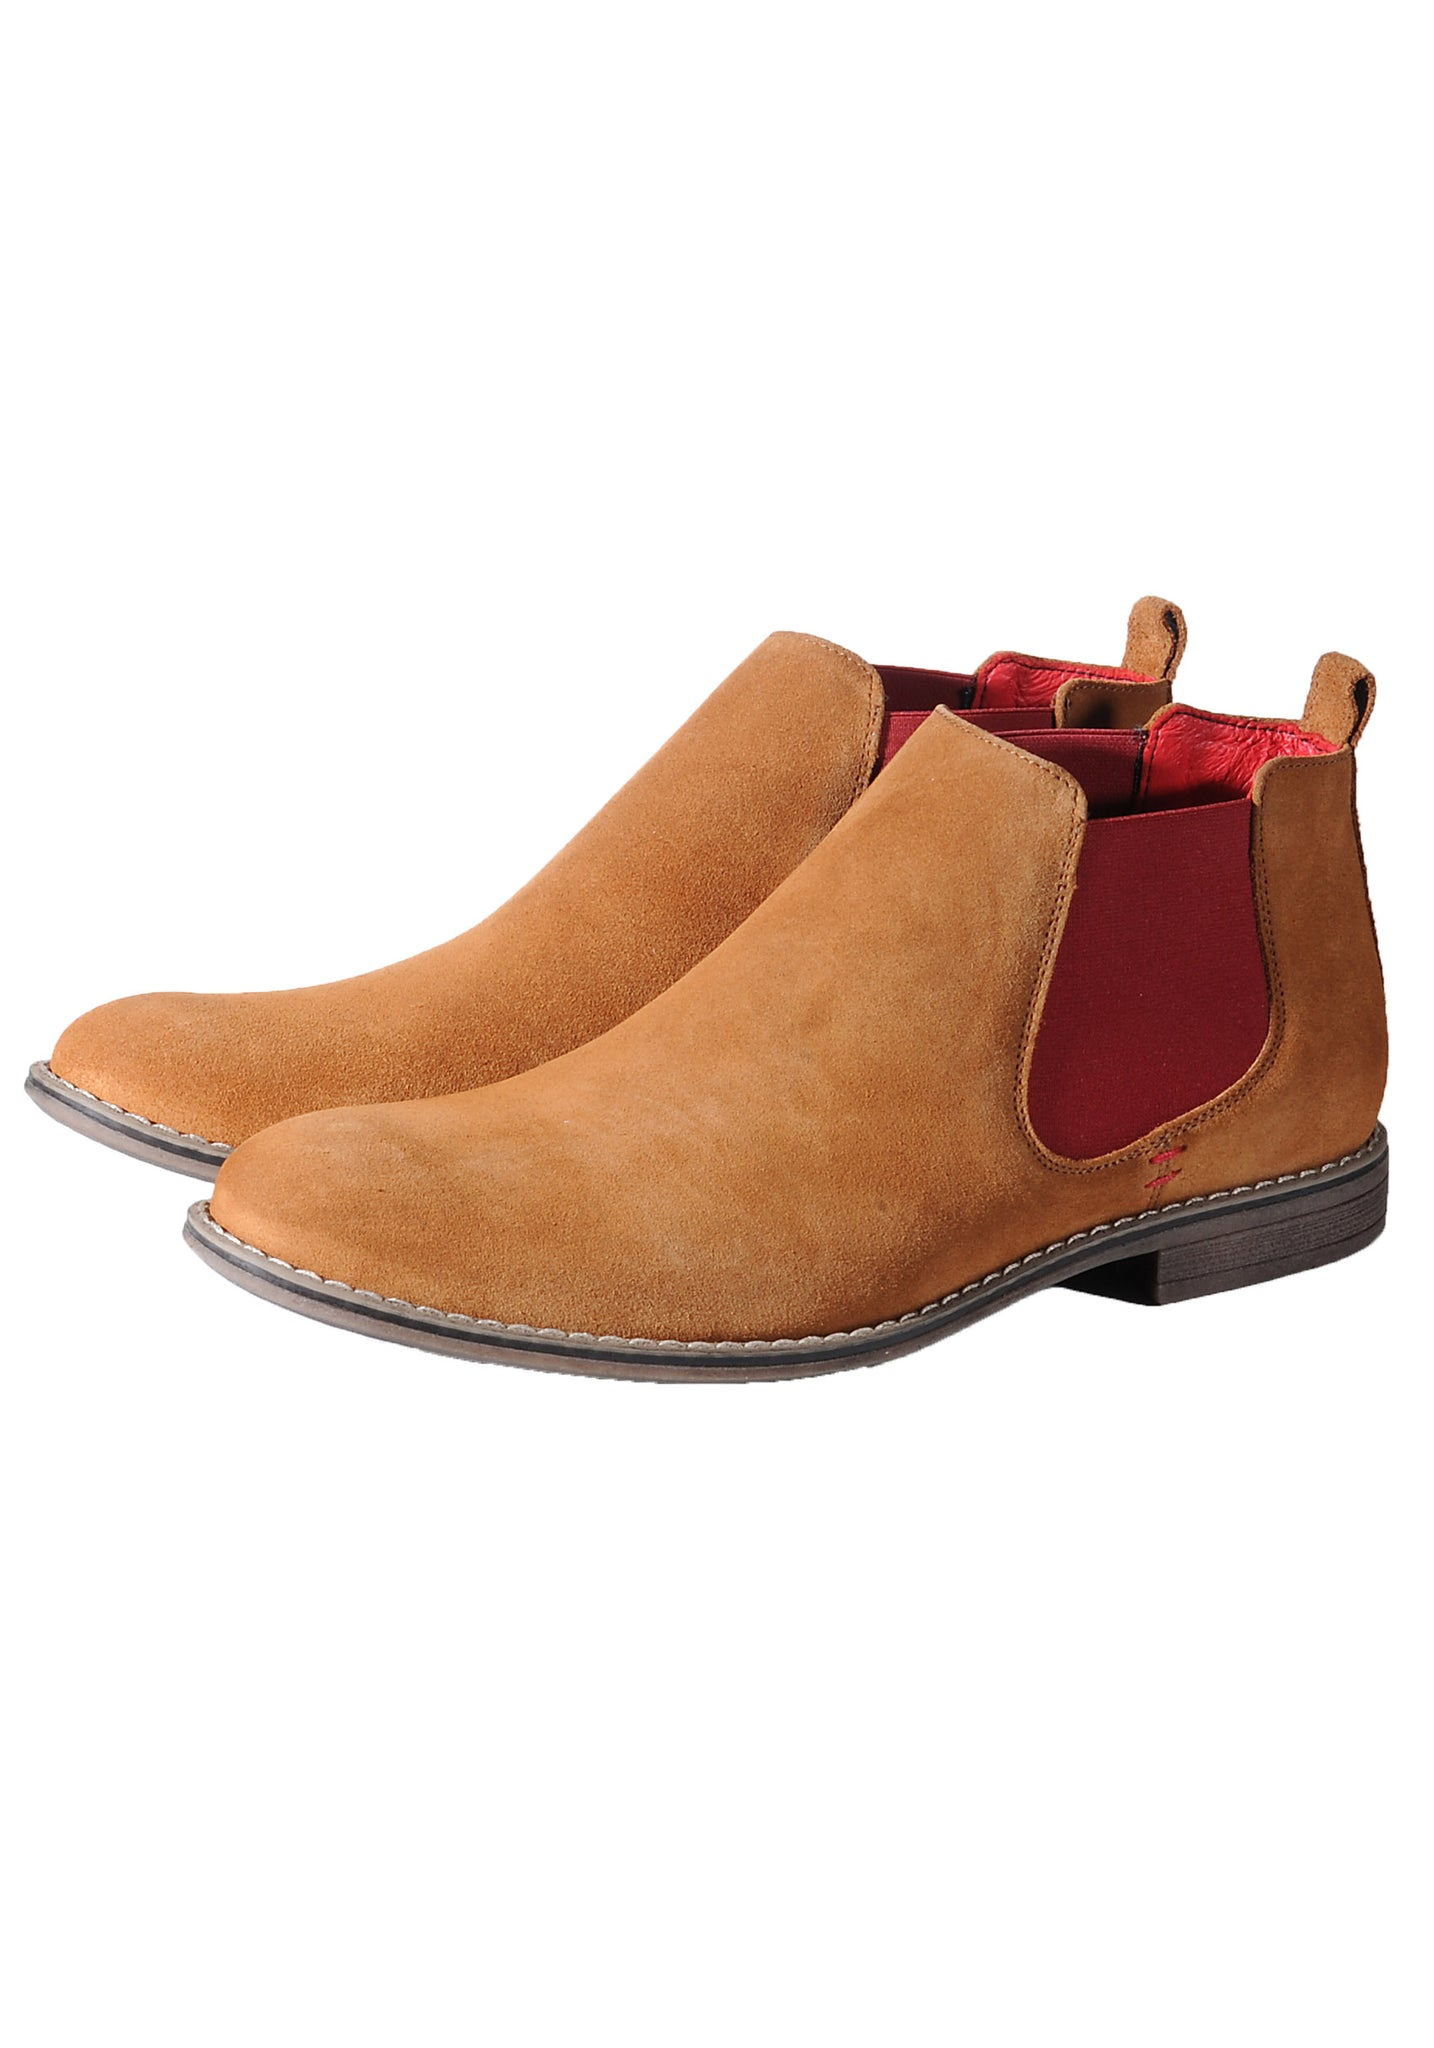 Lacuzzo Tan Chelsea Boot Lacuzzo - 7 clothing Cardiff